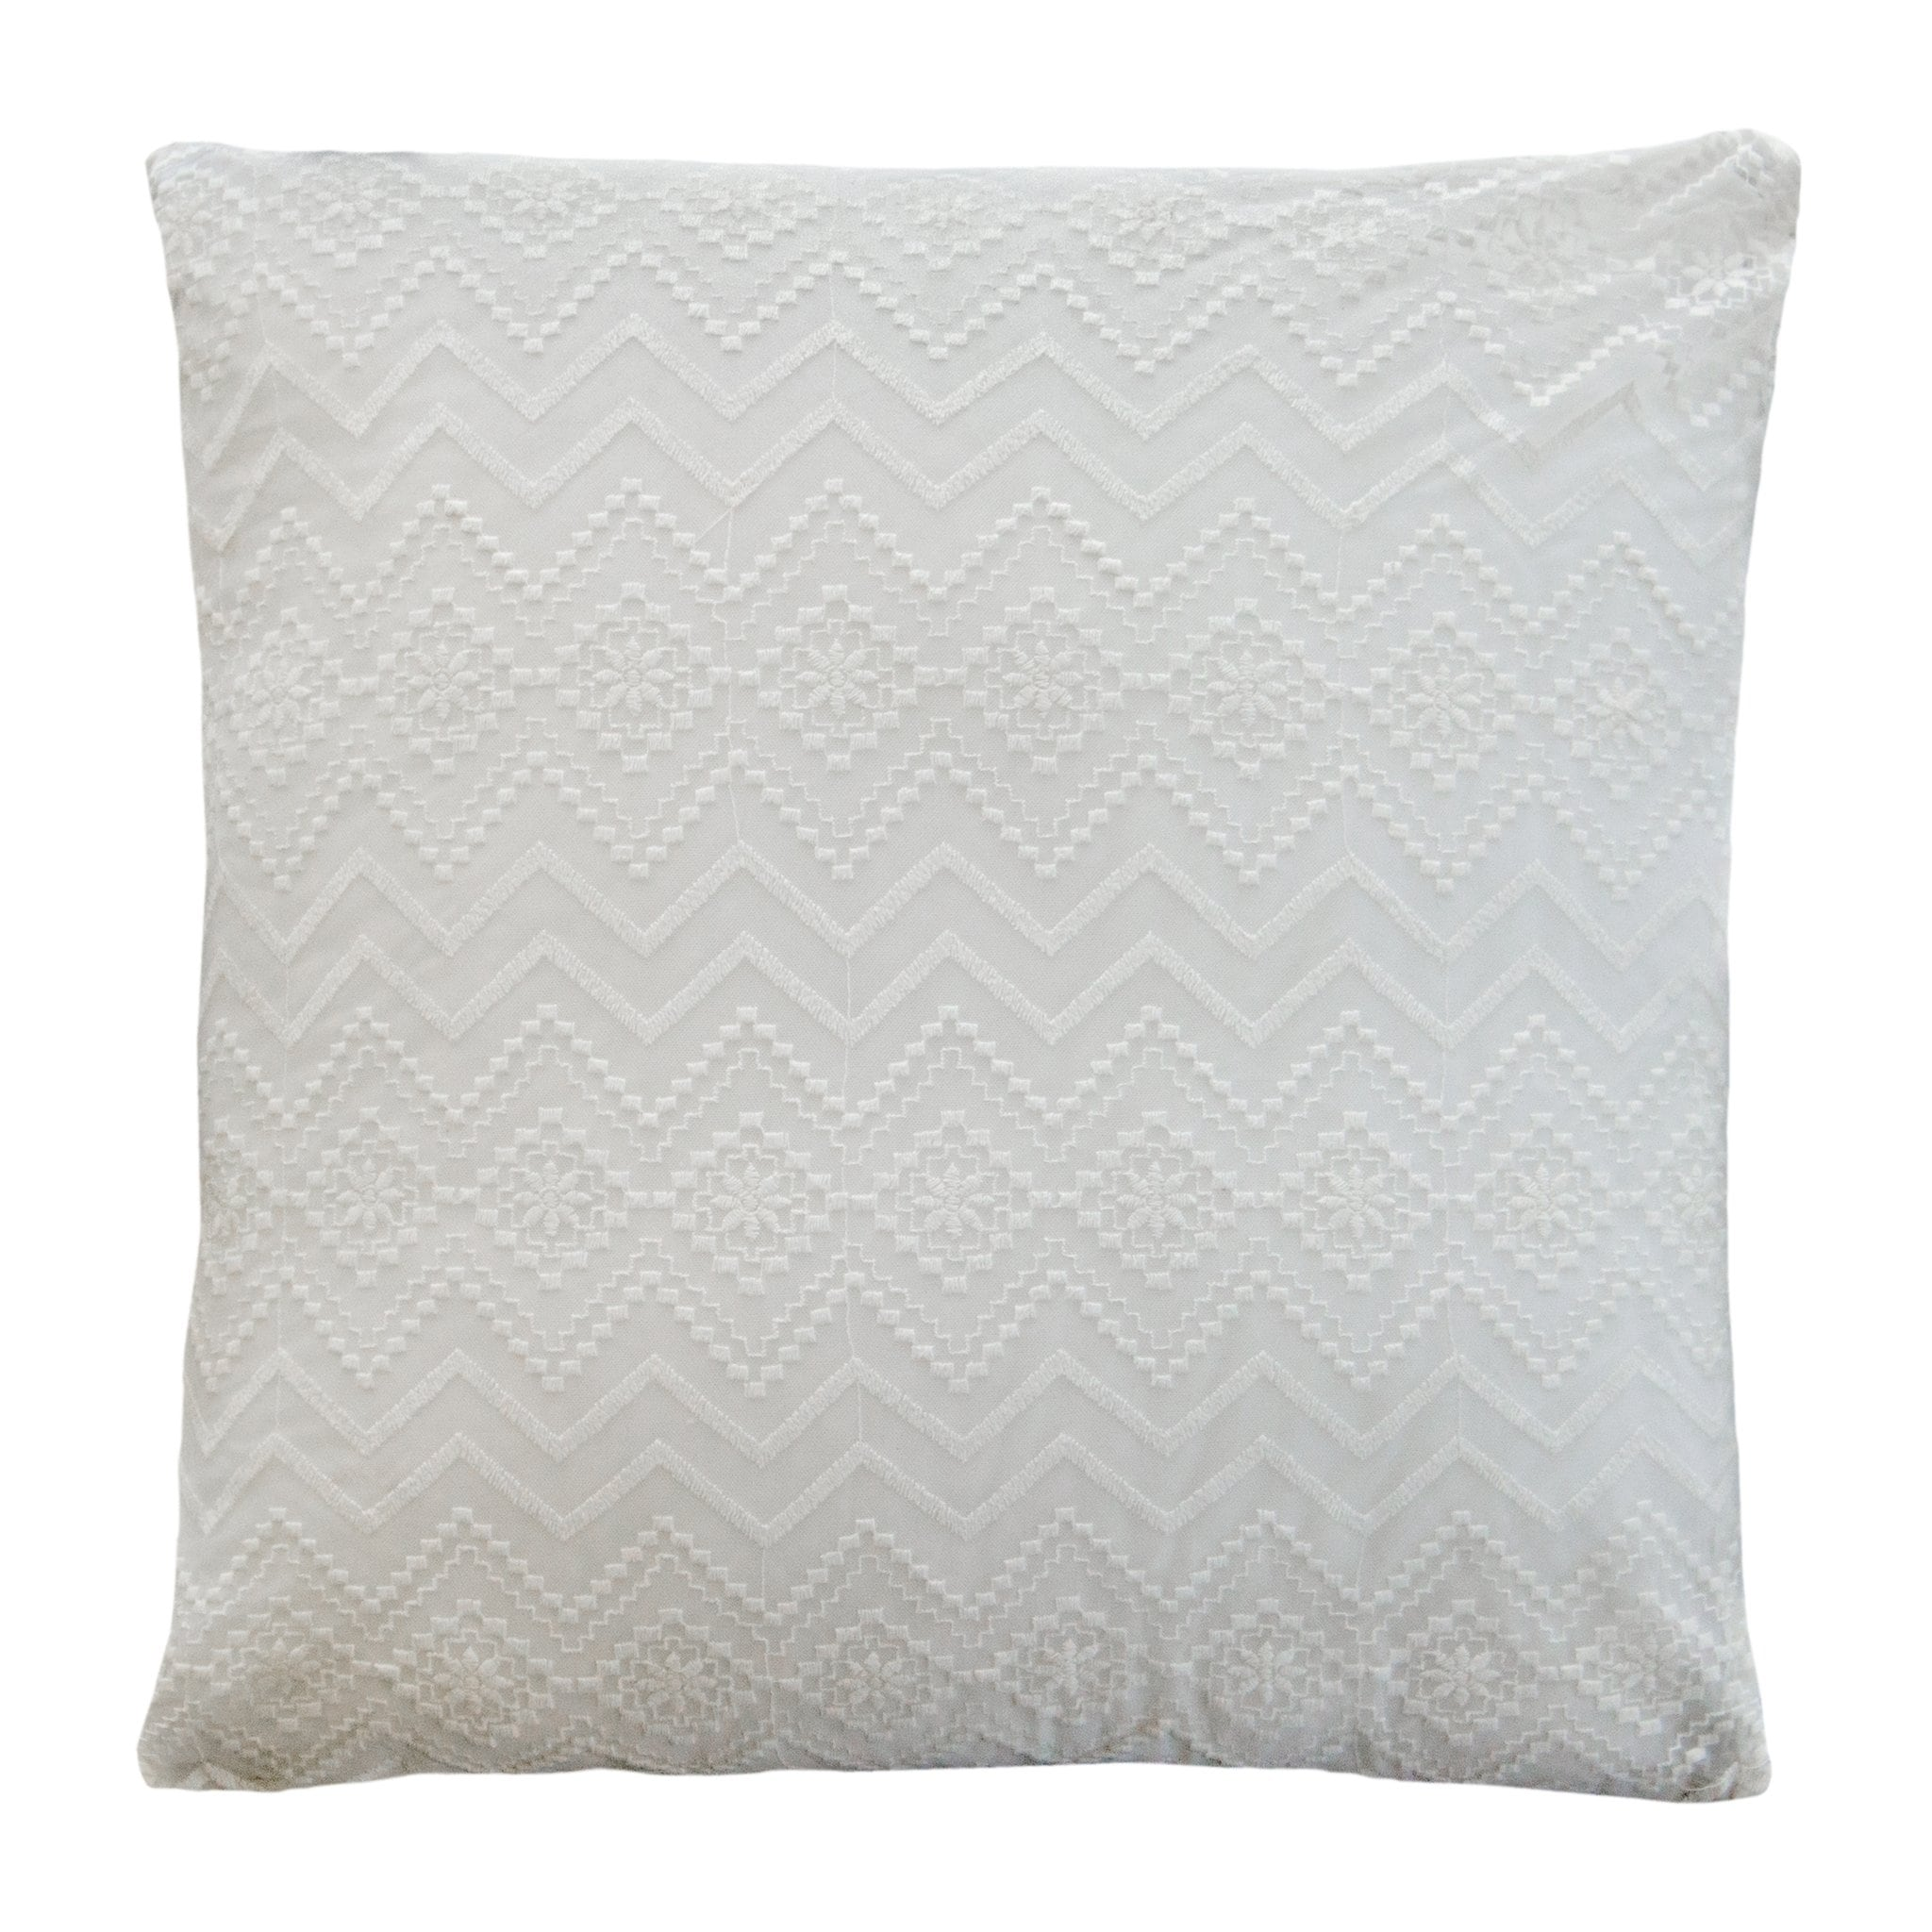 lace euro pillow cover 26x26 cover only sheer diamond